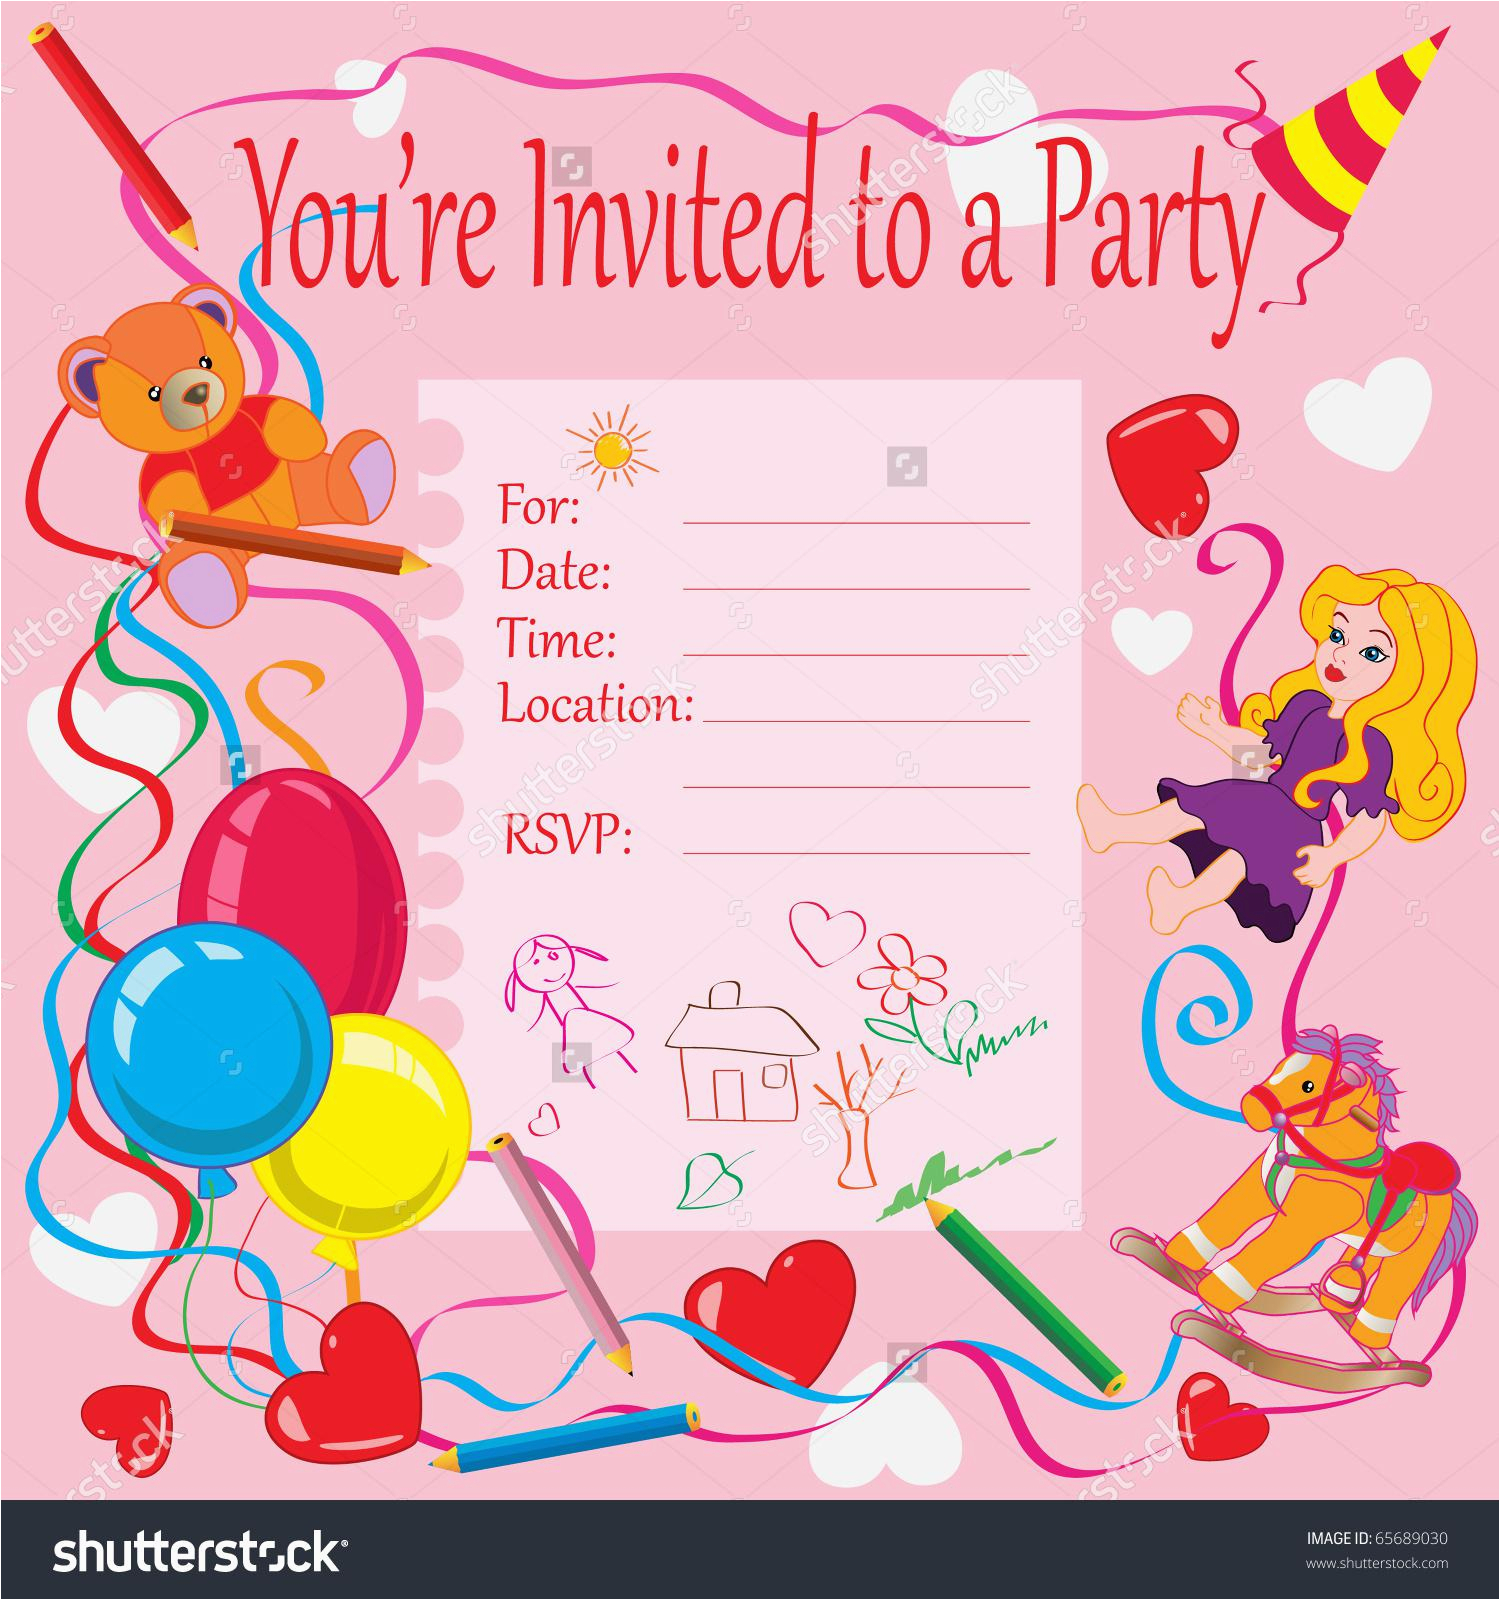 Email Birthday Cards For Kids 4 Step Make Your Own Invitations Free Sample